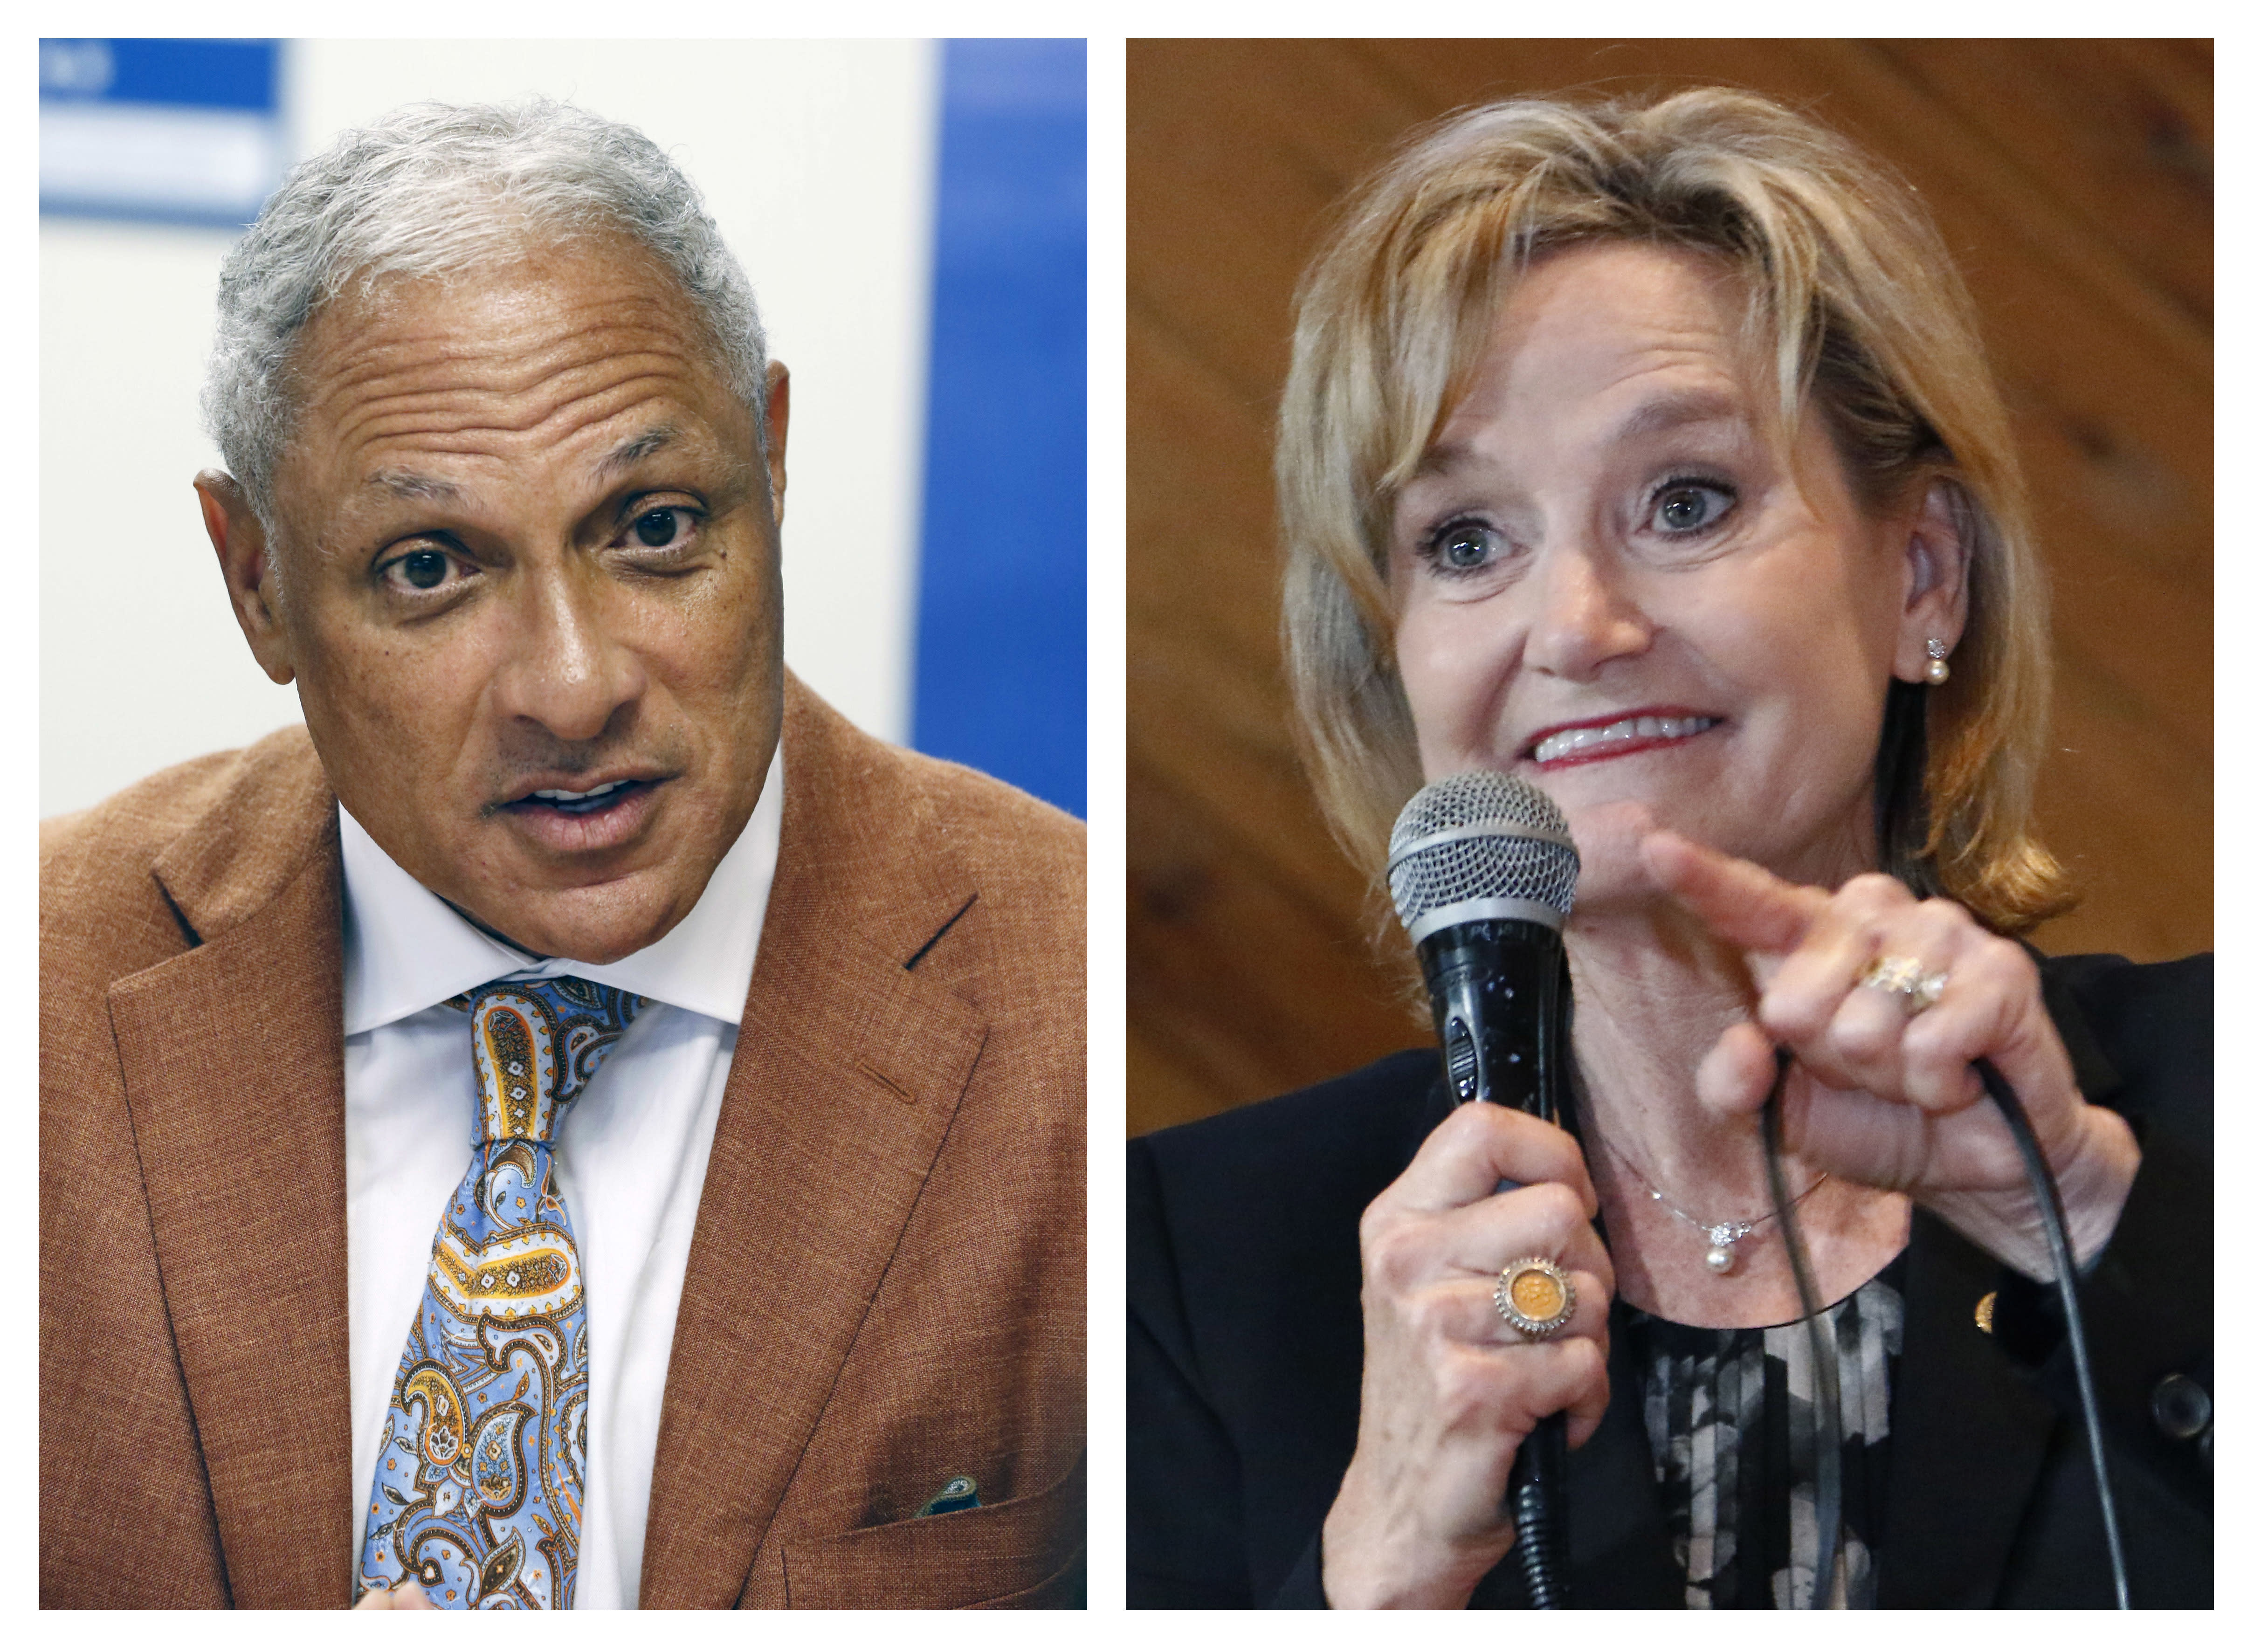 FILE - This file photo combination shows Mike Espy, left, a former congressman and former U.S. agriculture secretary, on Oct. 5, 2018, and U.S. Sen. Cindy Hyde-Smith, R-Miss., on Nov. 5, 2018, both in Jackson, Miss. If Espy and Hyde-Smith win their respective party's primaries, they will face each other in the November 2020 general election. Hyde-Smith defeated Espy in a November 2018 special election. (AP Photo/Rogelio V. Solis, File)